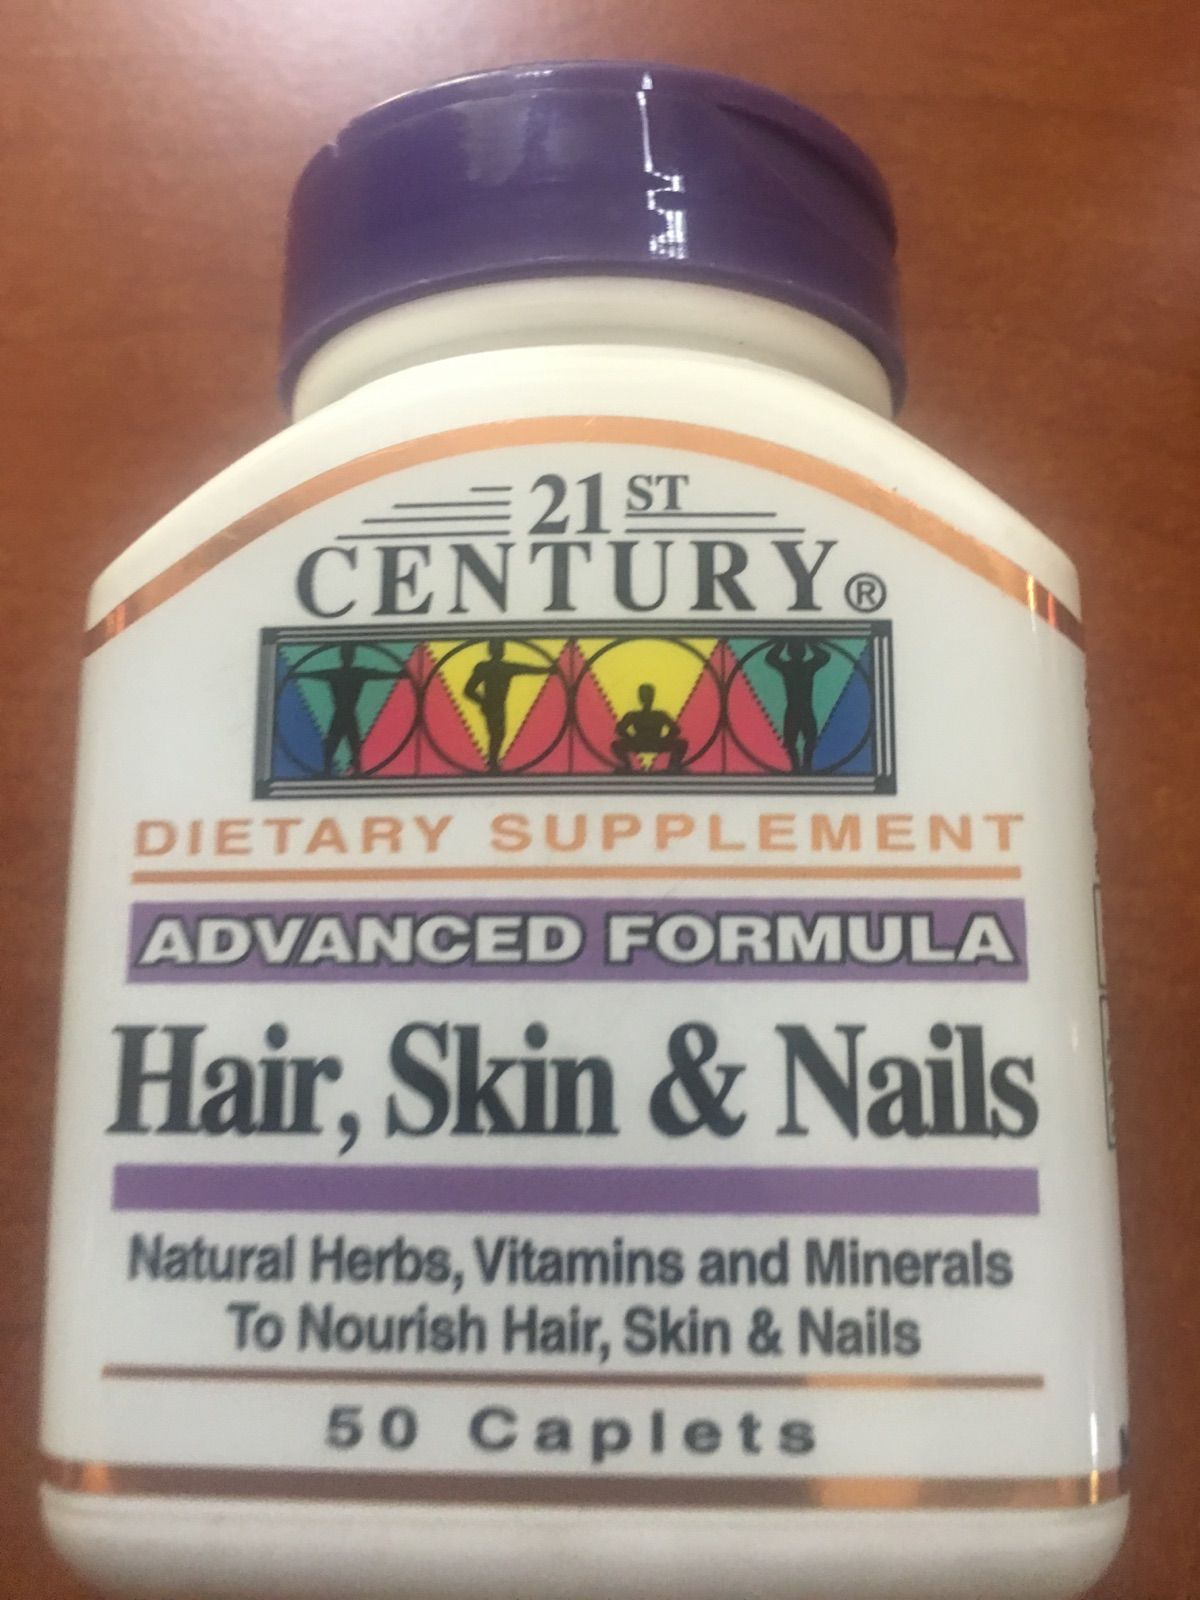 Hair Skin Nails Supplement Code 00911 Price2800 تابليت تقويت